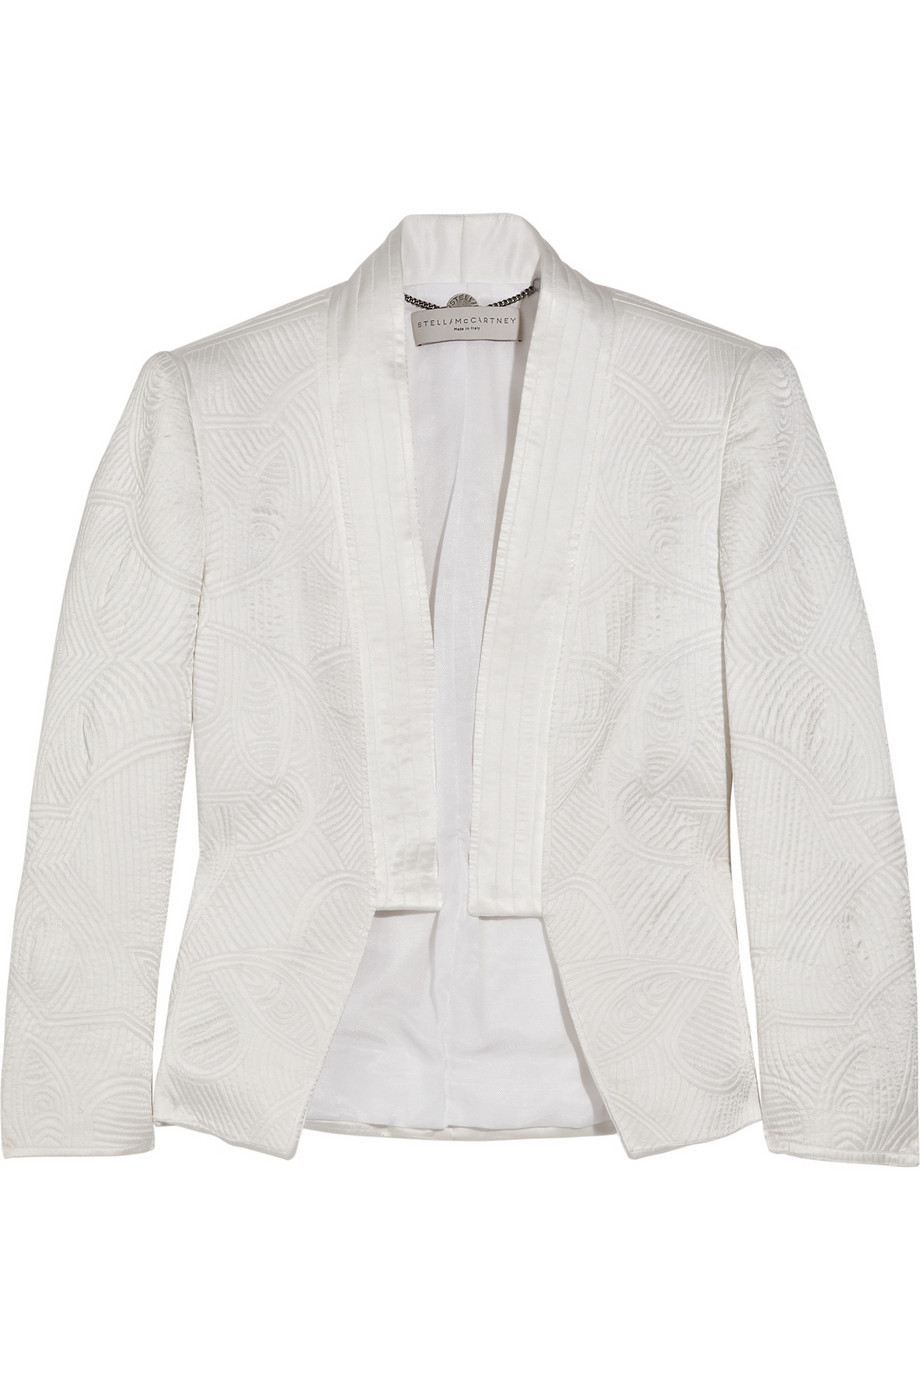 a075920a19a Lyst - Stella McCartney Quilted Satin Jacket in White